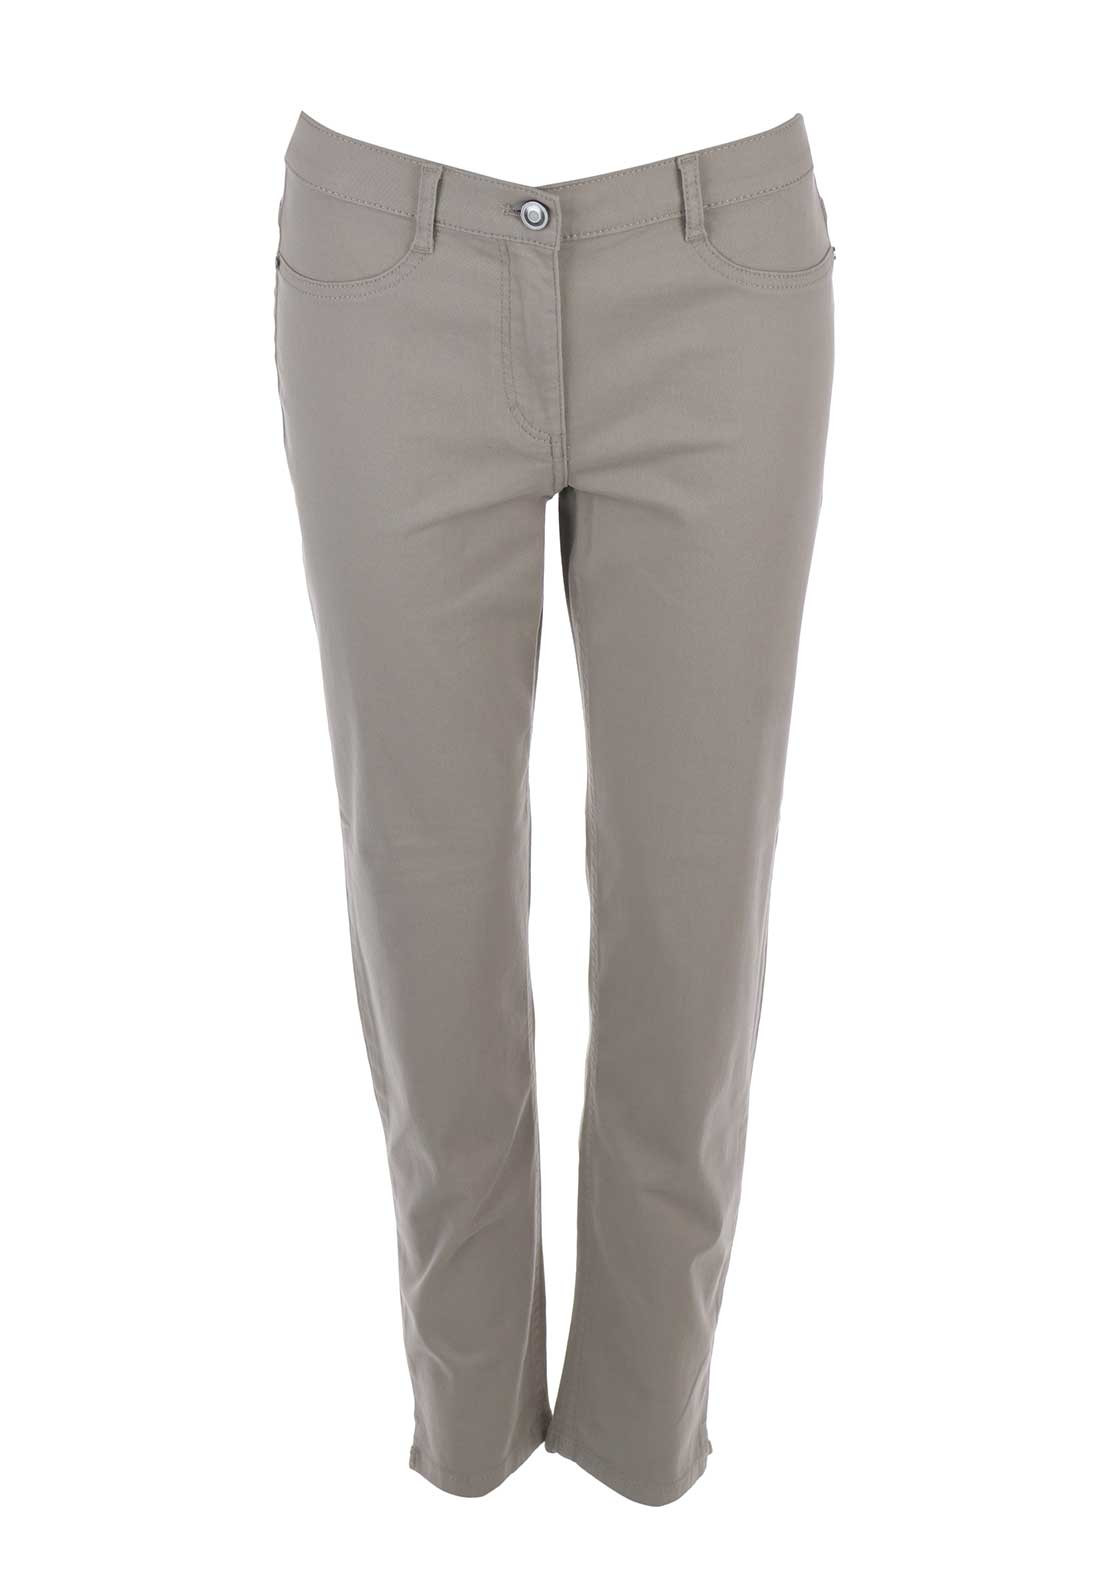 Betty Barclay 7/8 Length Slim Fit Jeans, Taupe